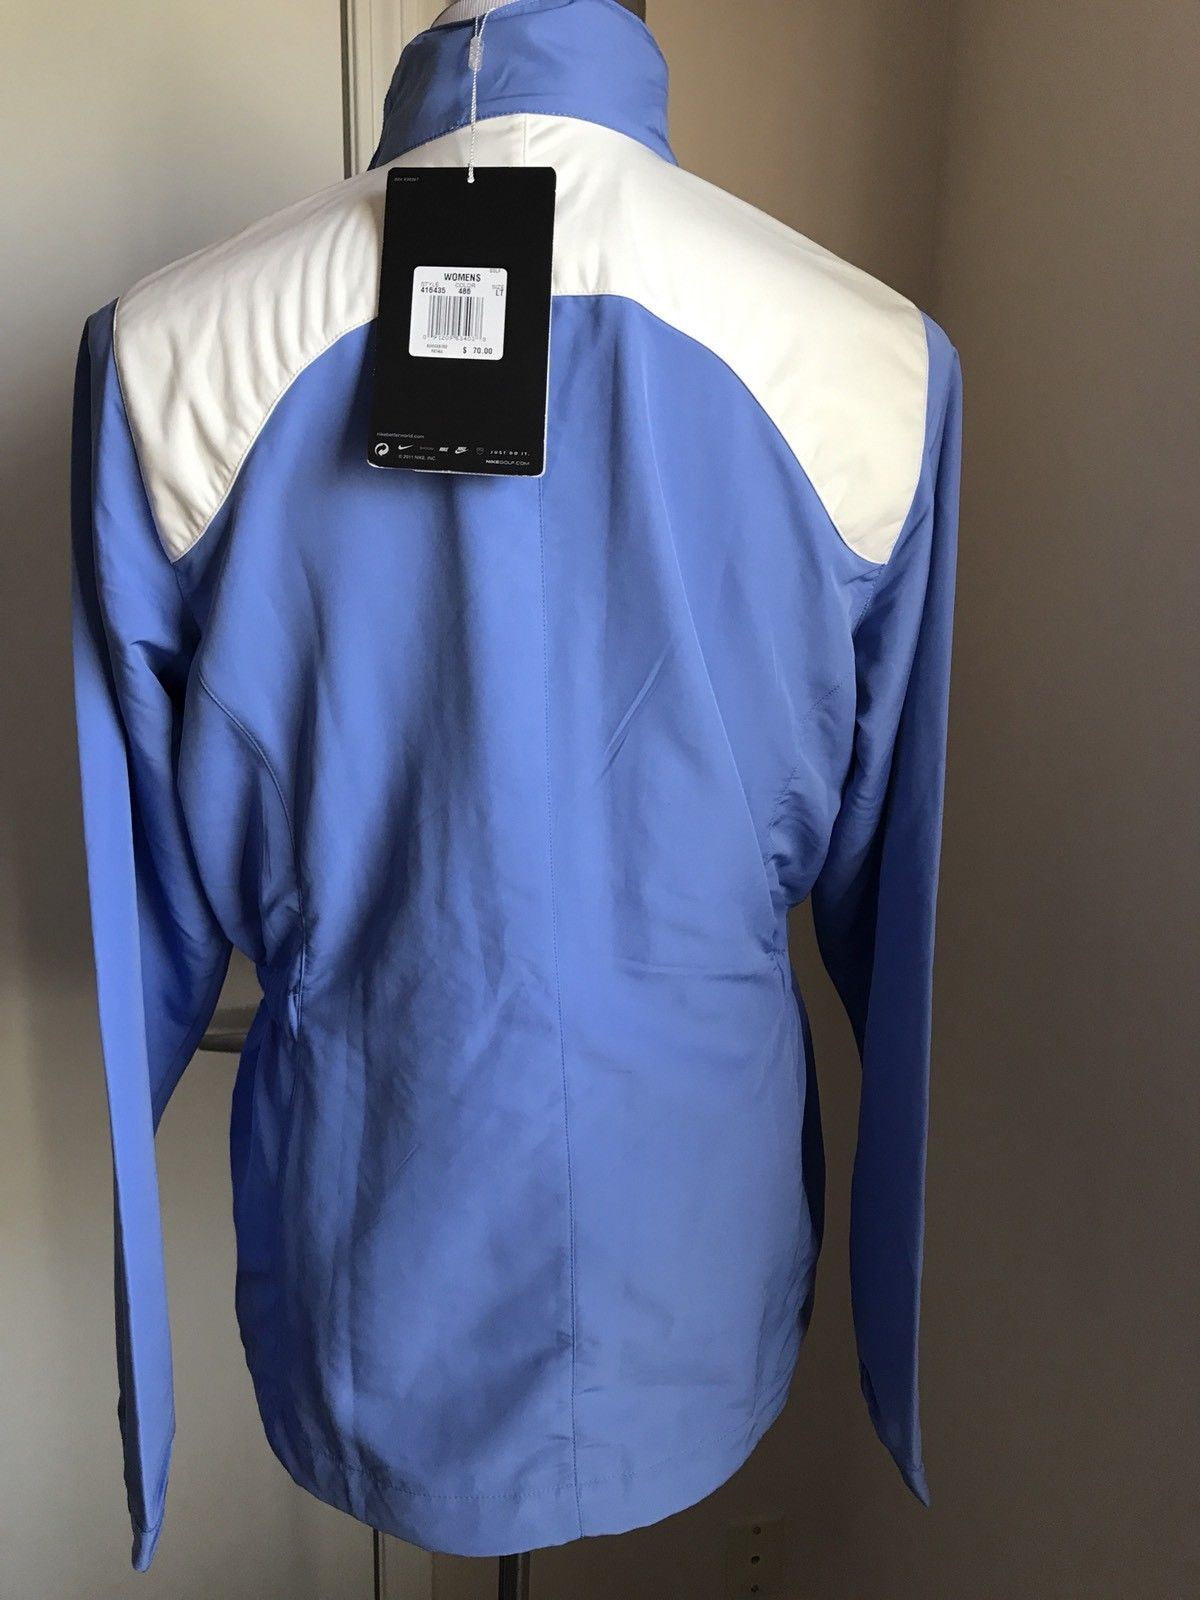 New $70 Nike Men's Shirt Jacket Blue Size L - BAYSUPERSTORE